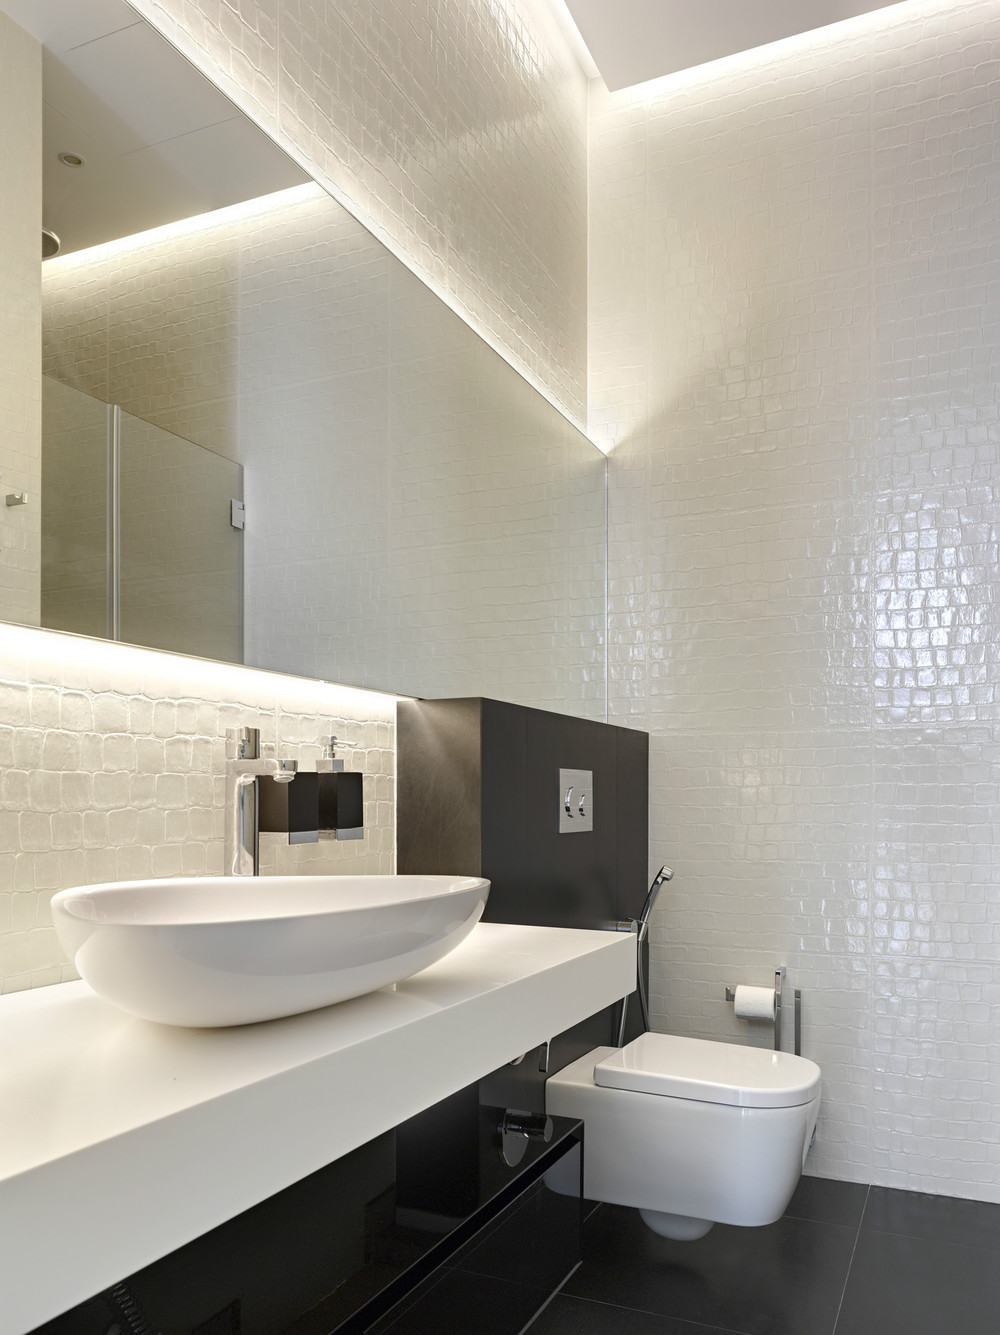 Reptile Tiled - Invisible doors turn a home into an artistic feat of design